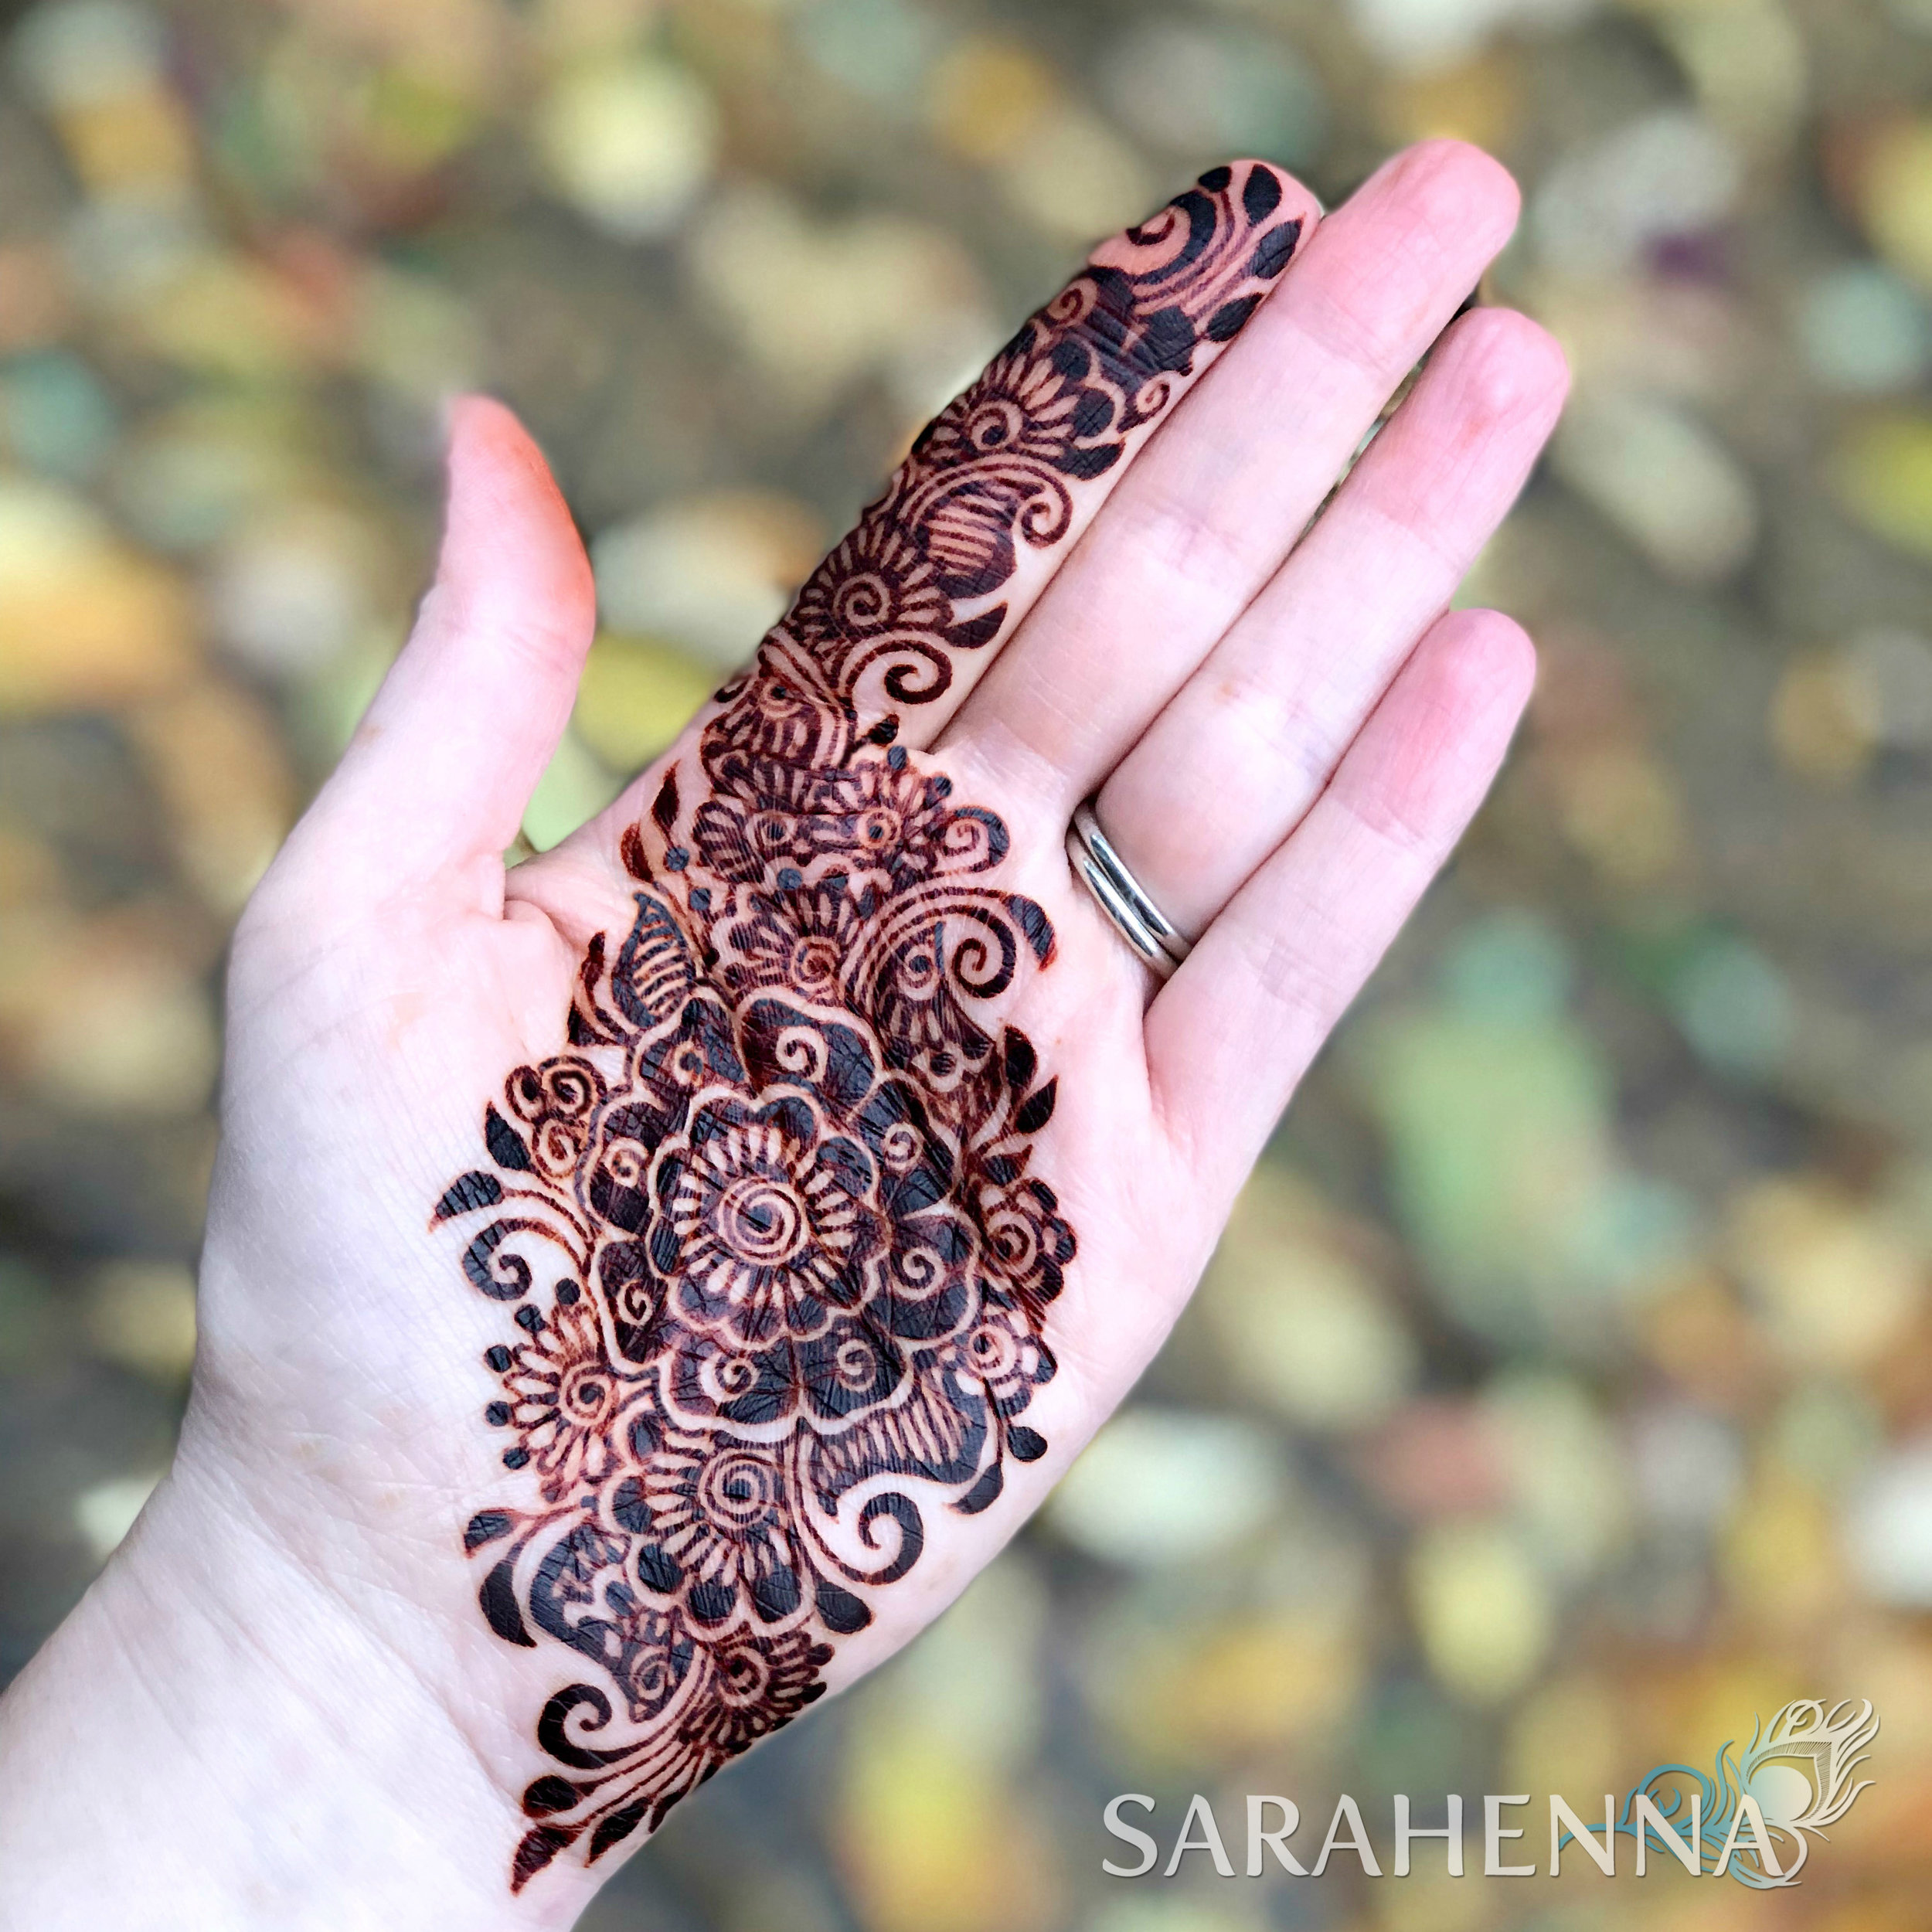 You don't need a complicated recipe to get beautiful, dark stains from your henna!